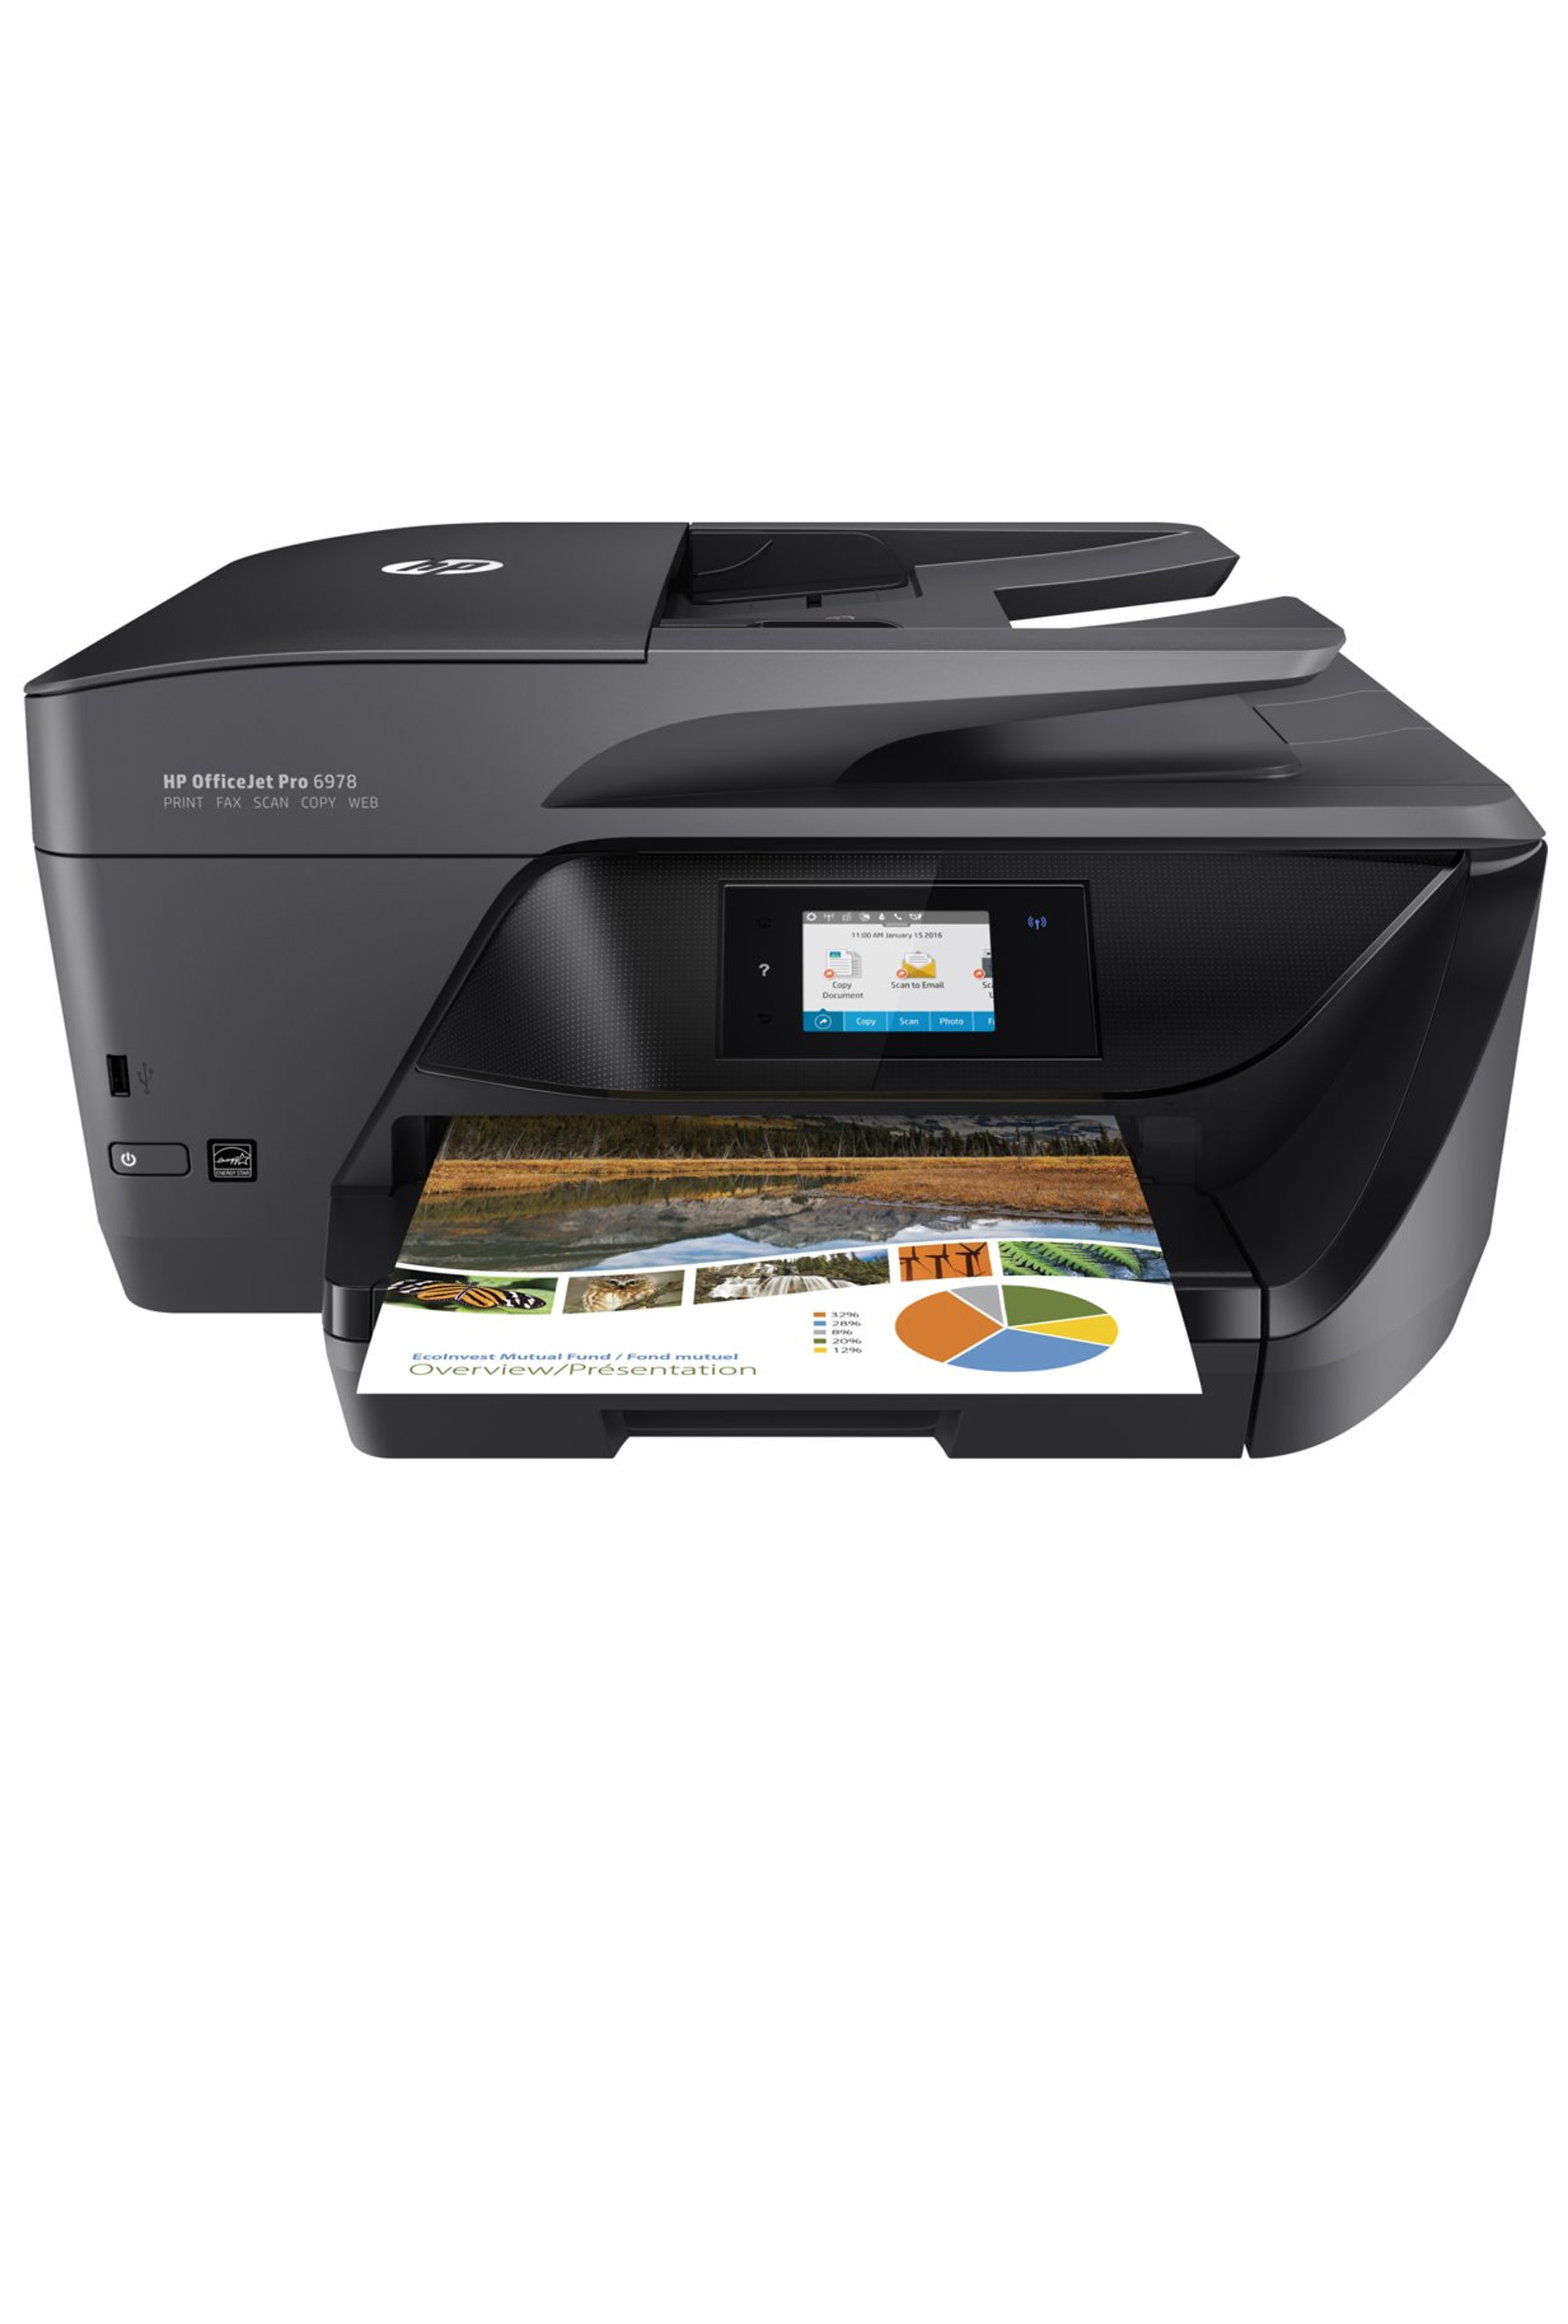 HP OfficeJet Pro 6978 All-in-One Printer up to 30PPM Print/ Copy/ Scan/ Fax